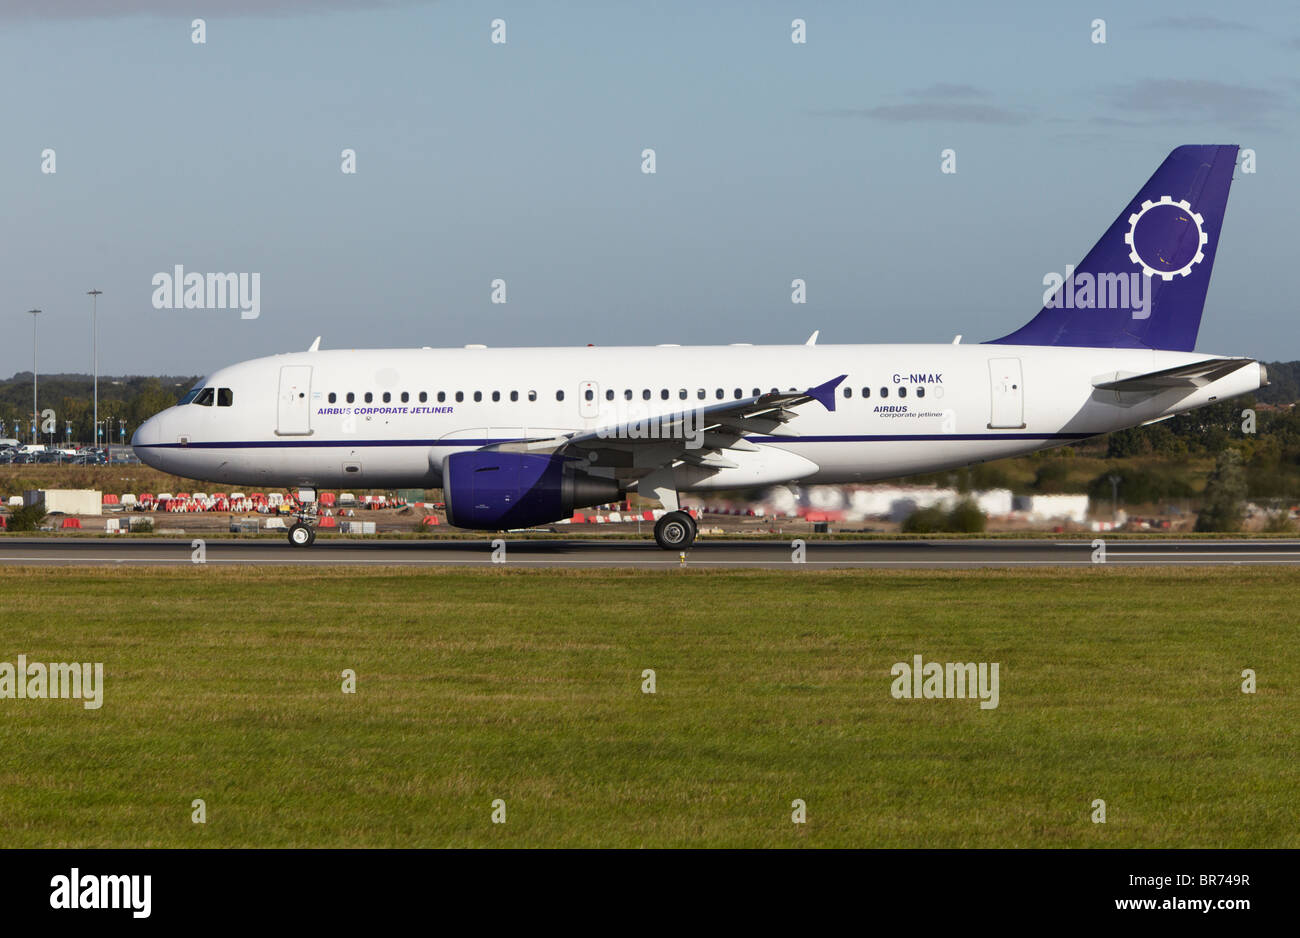 Twin Jet Airbus A319-133X taking off at Luton Airport, Bedfordshire, England, United Kingdom - Stock Image